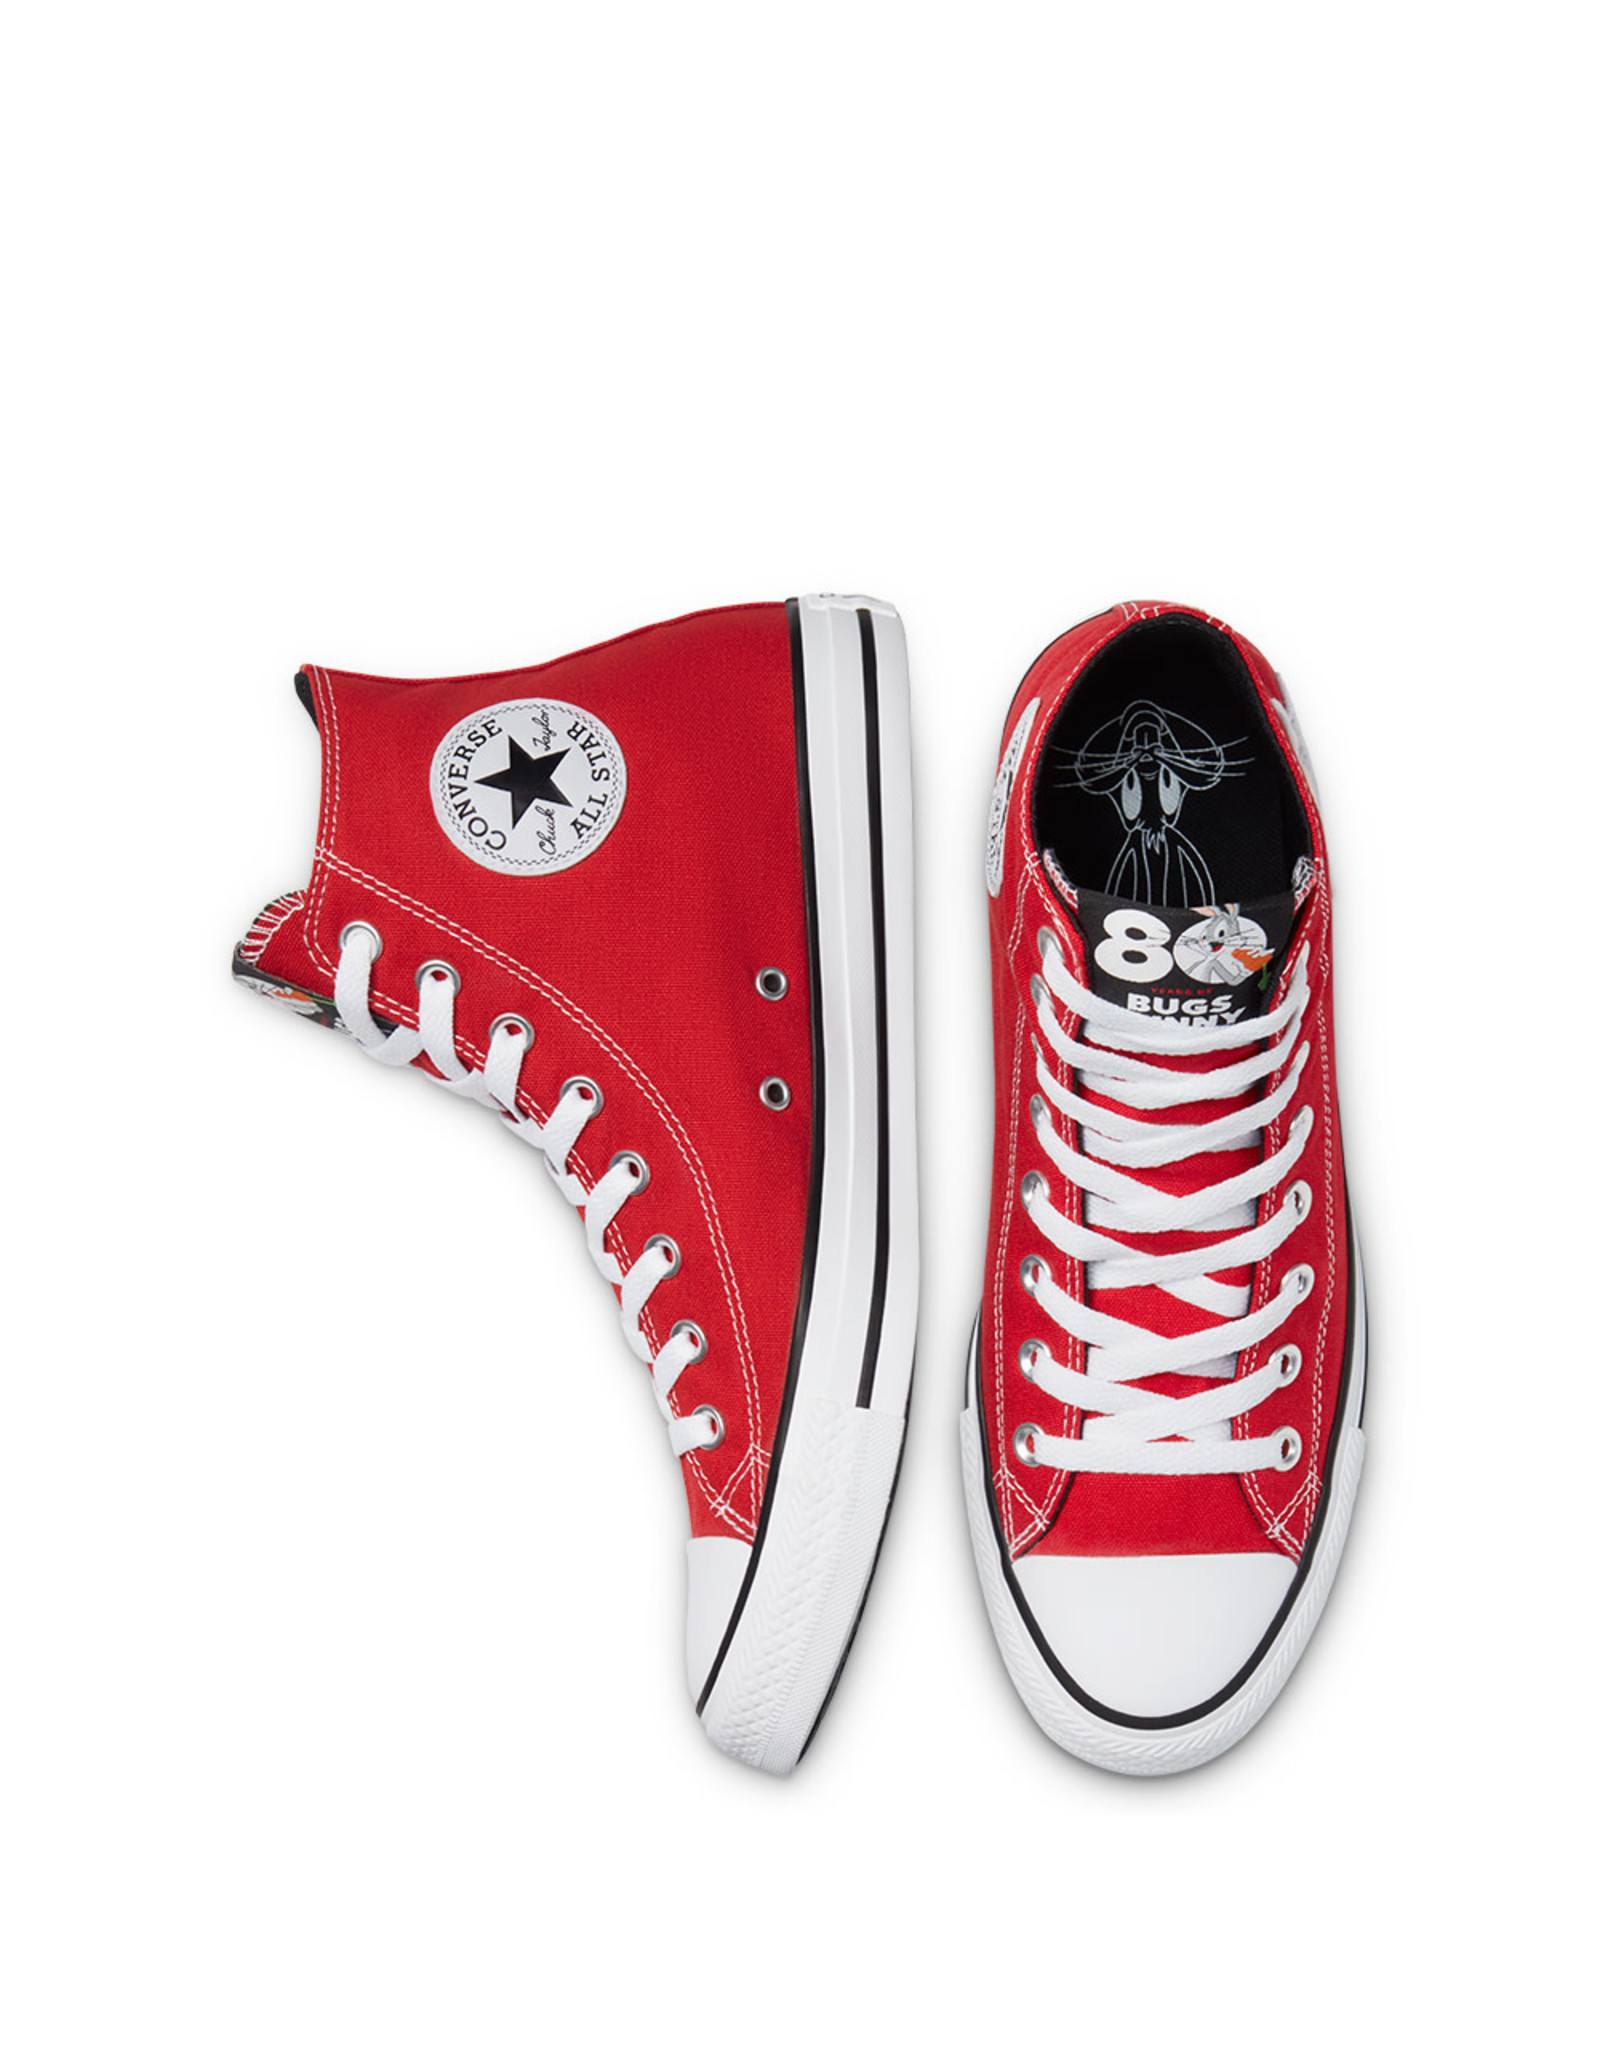 CONVERSE CHUCK TAYLOR HI BUGS BUNNY RED/WHITE/BLACK C20BUGR-169224C